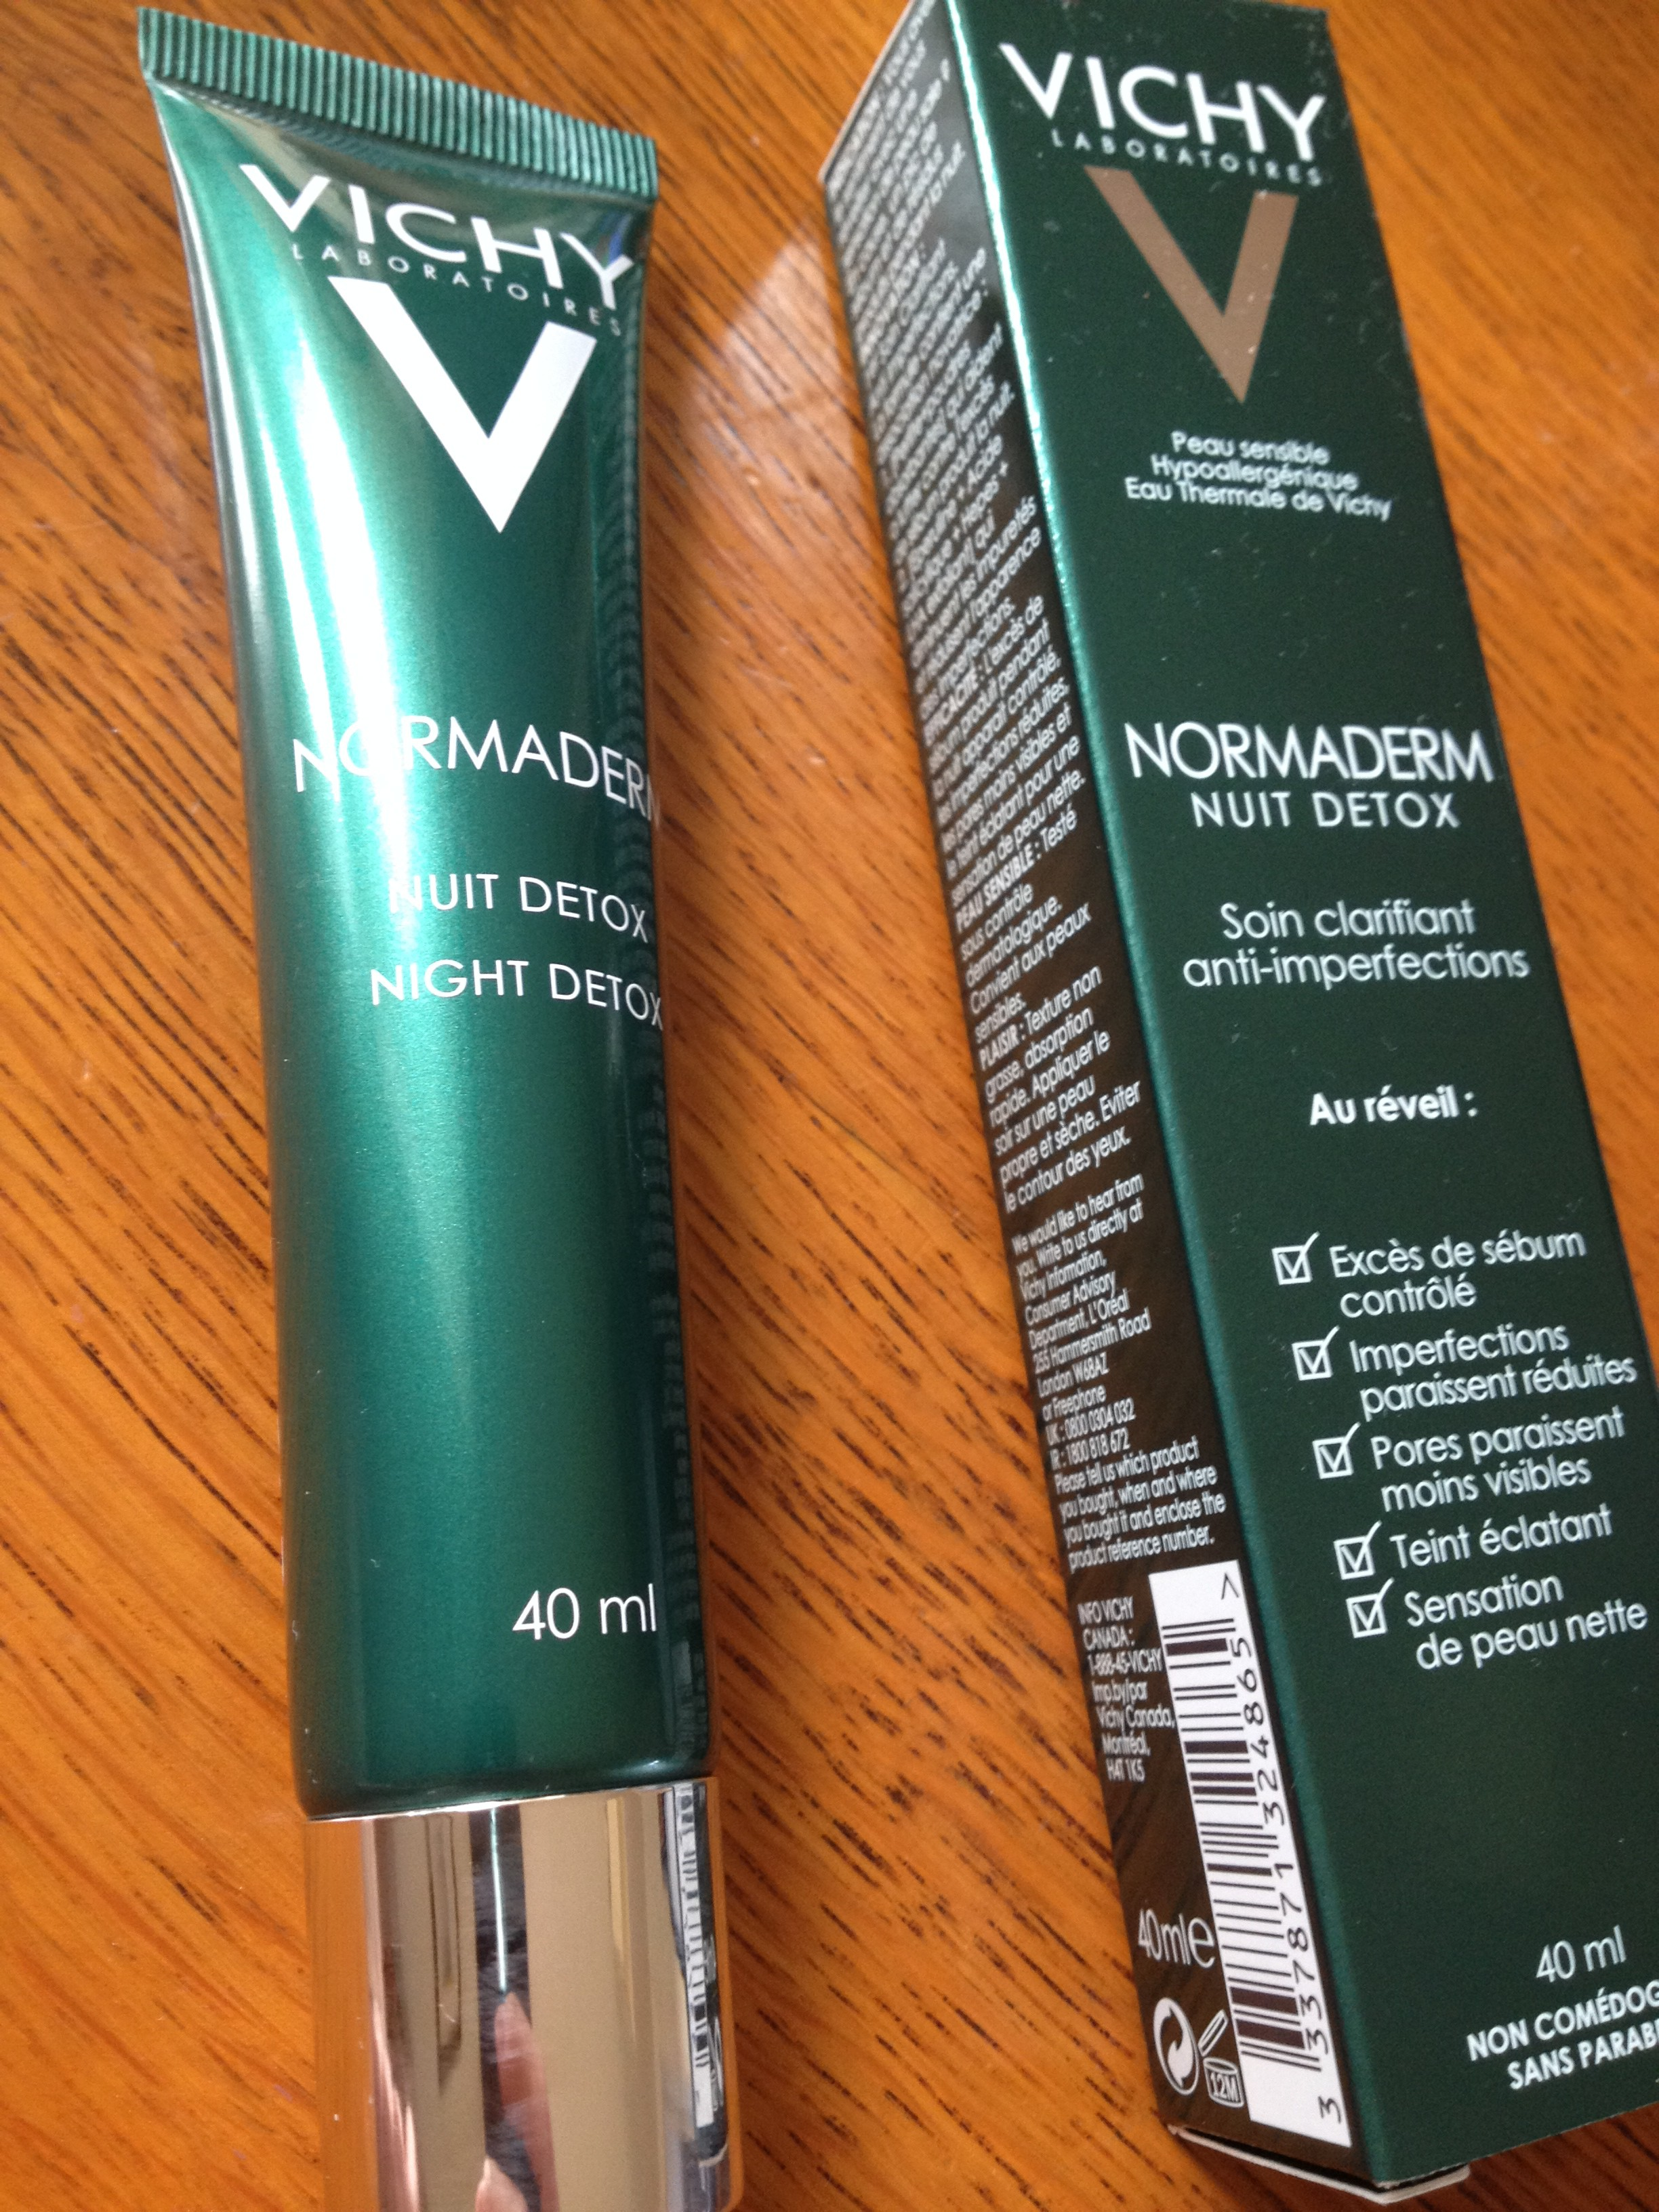 Vichy Normaderm Night Detox Treatment: Not Quite Spot-On | Beaut.ie